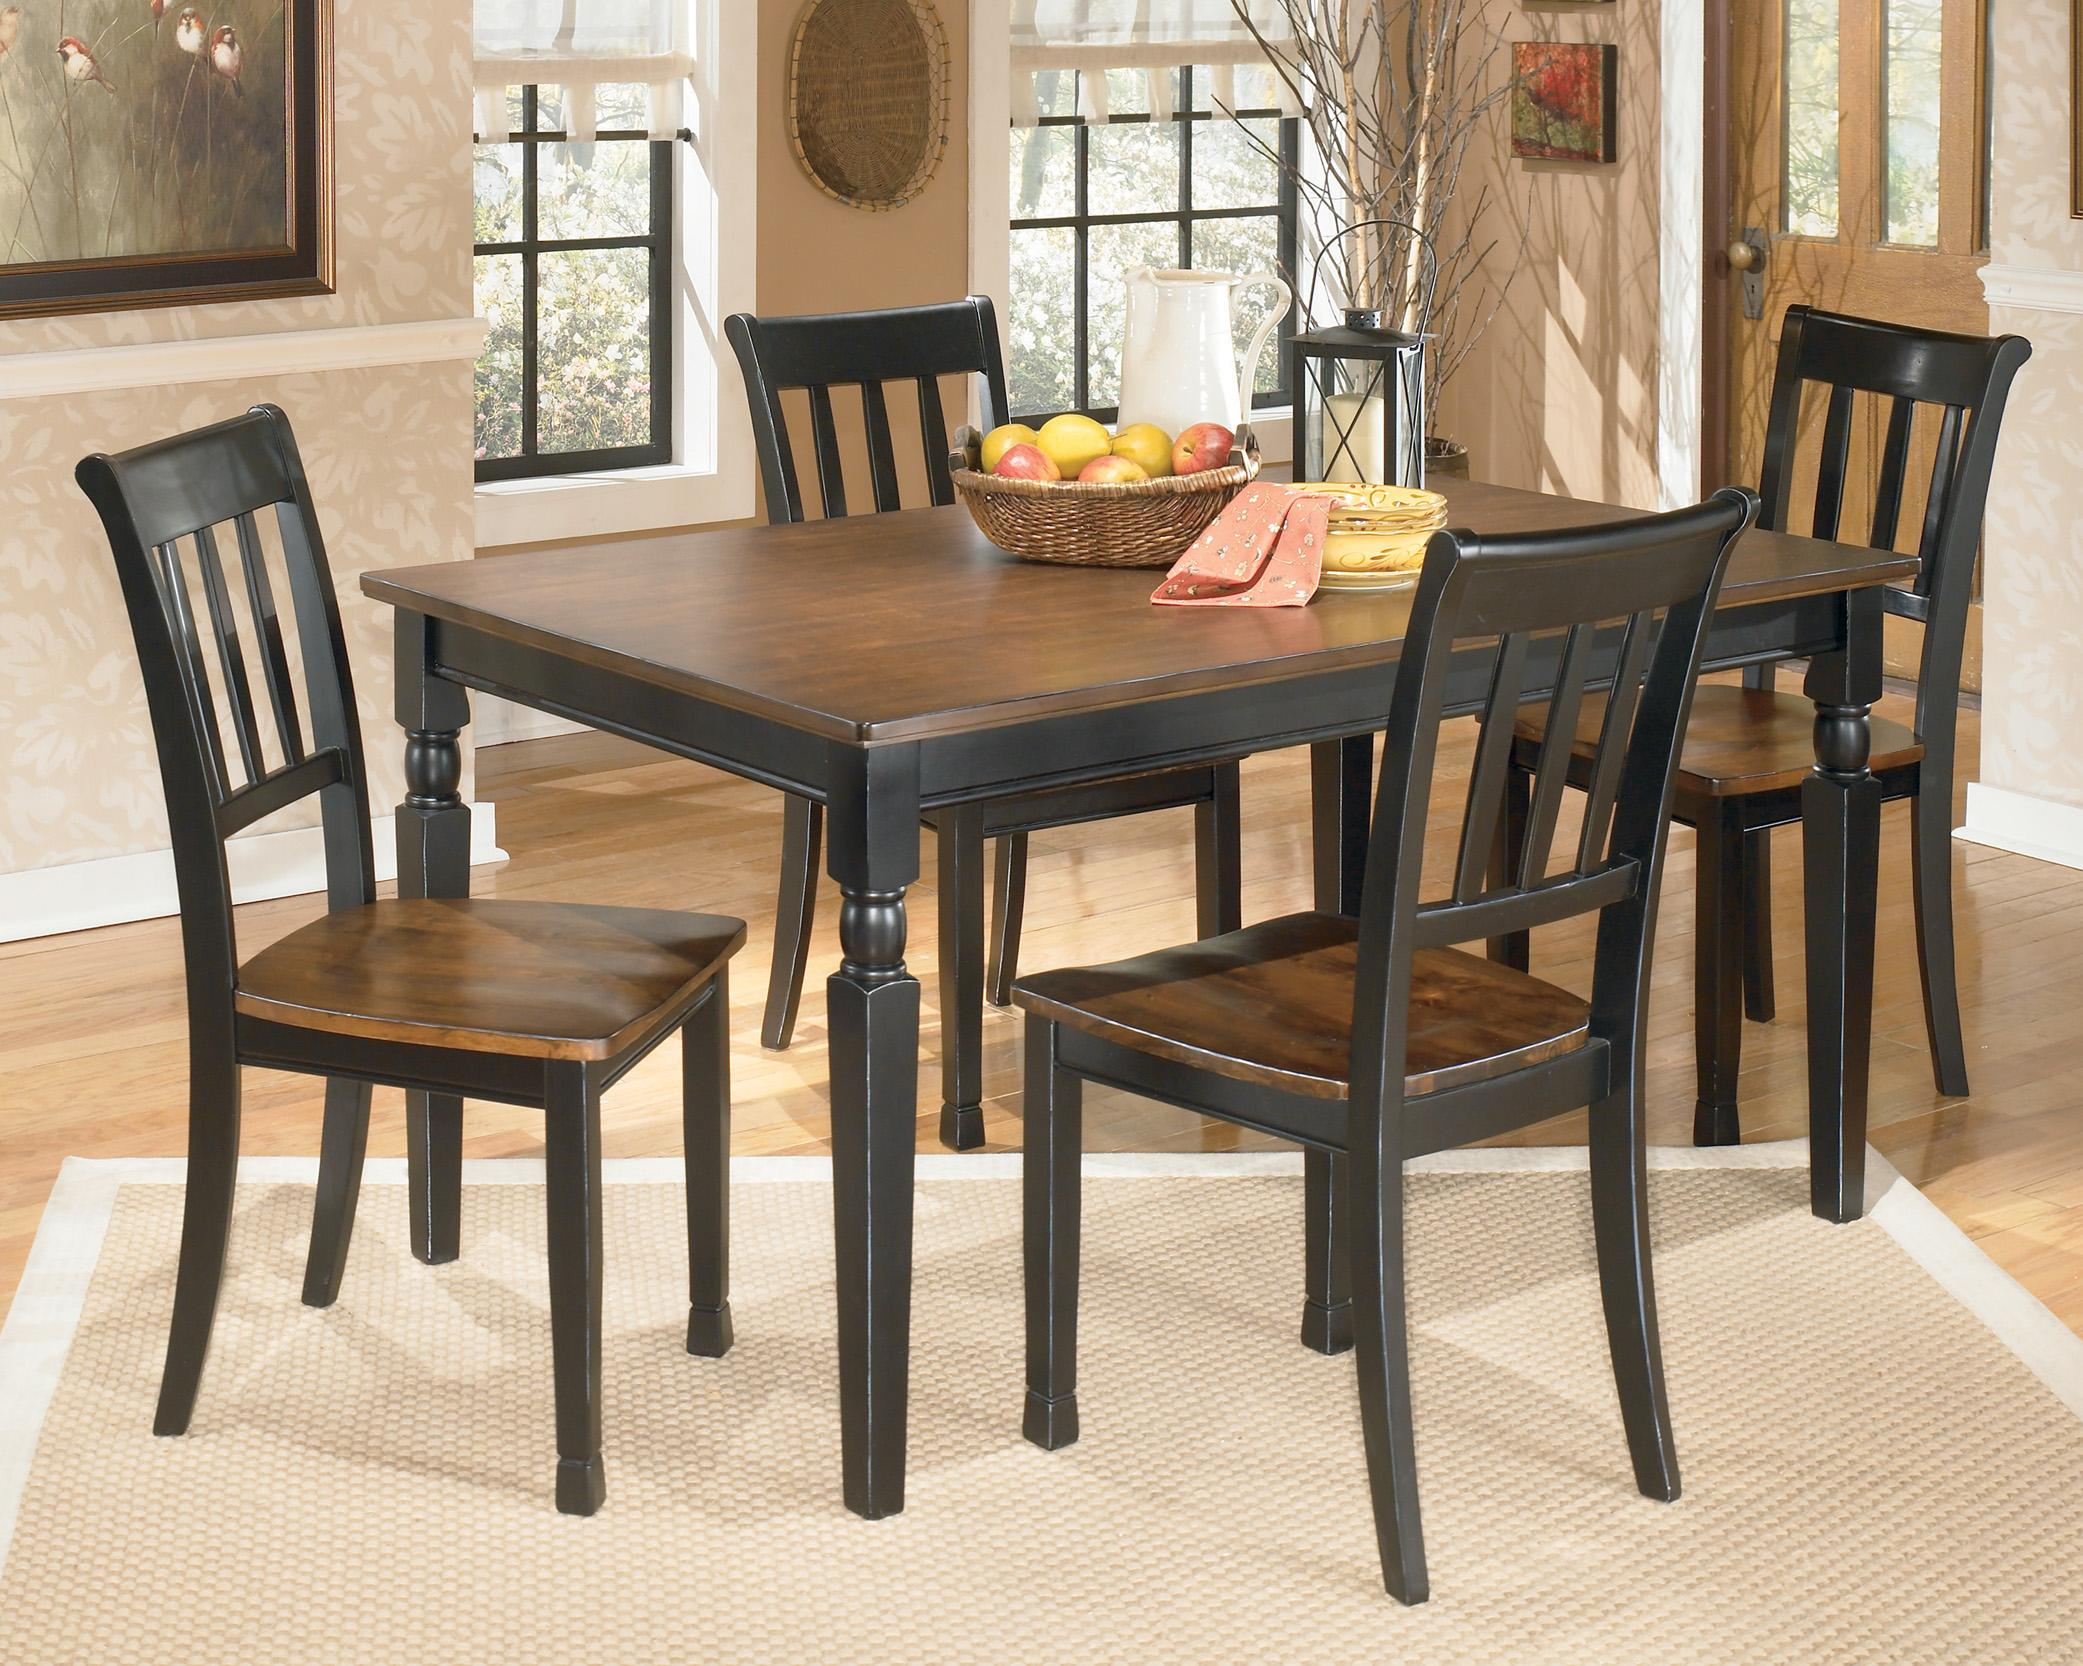 Owingsville 5-Piece Rectangular Dining Table Set by Signature Design by Ashley at Houston's Yuma Furniture